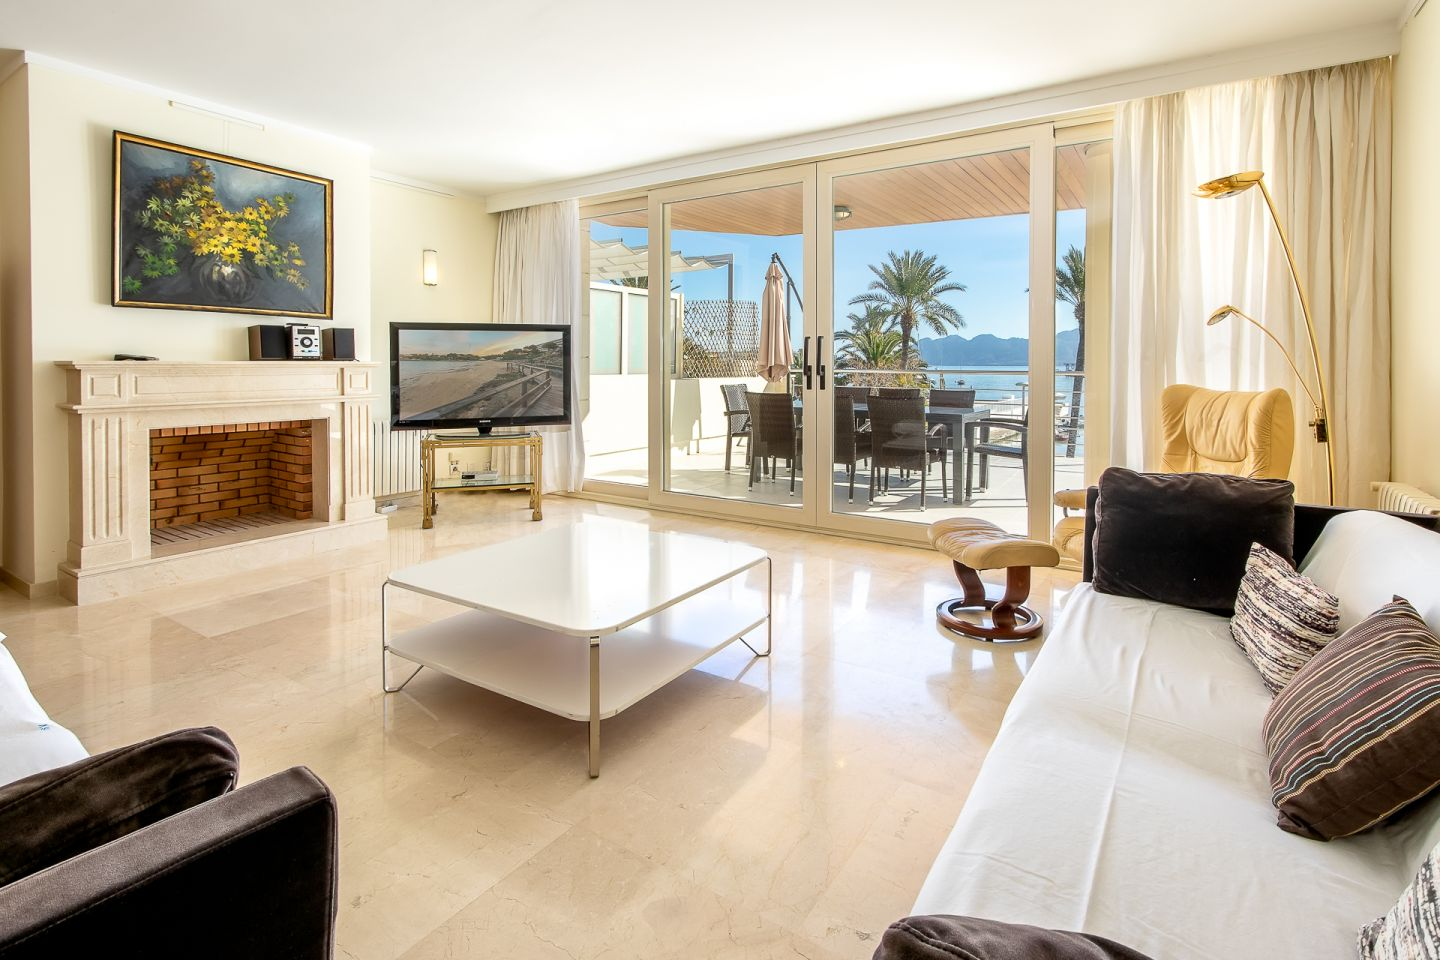 5 Bed Apartment for sale in Puerto Pollensa 1